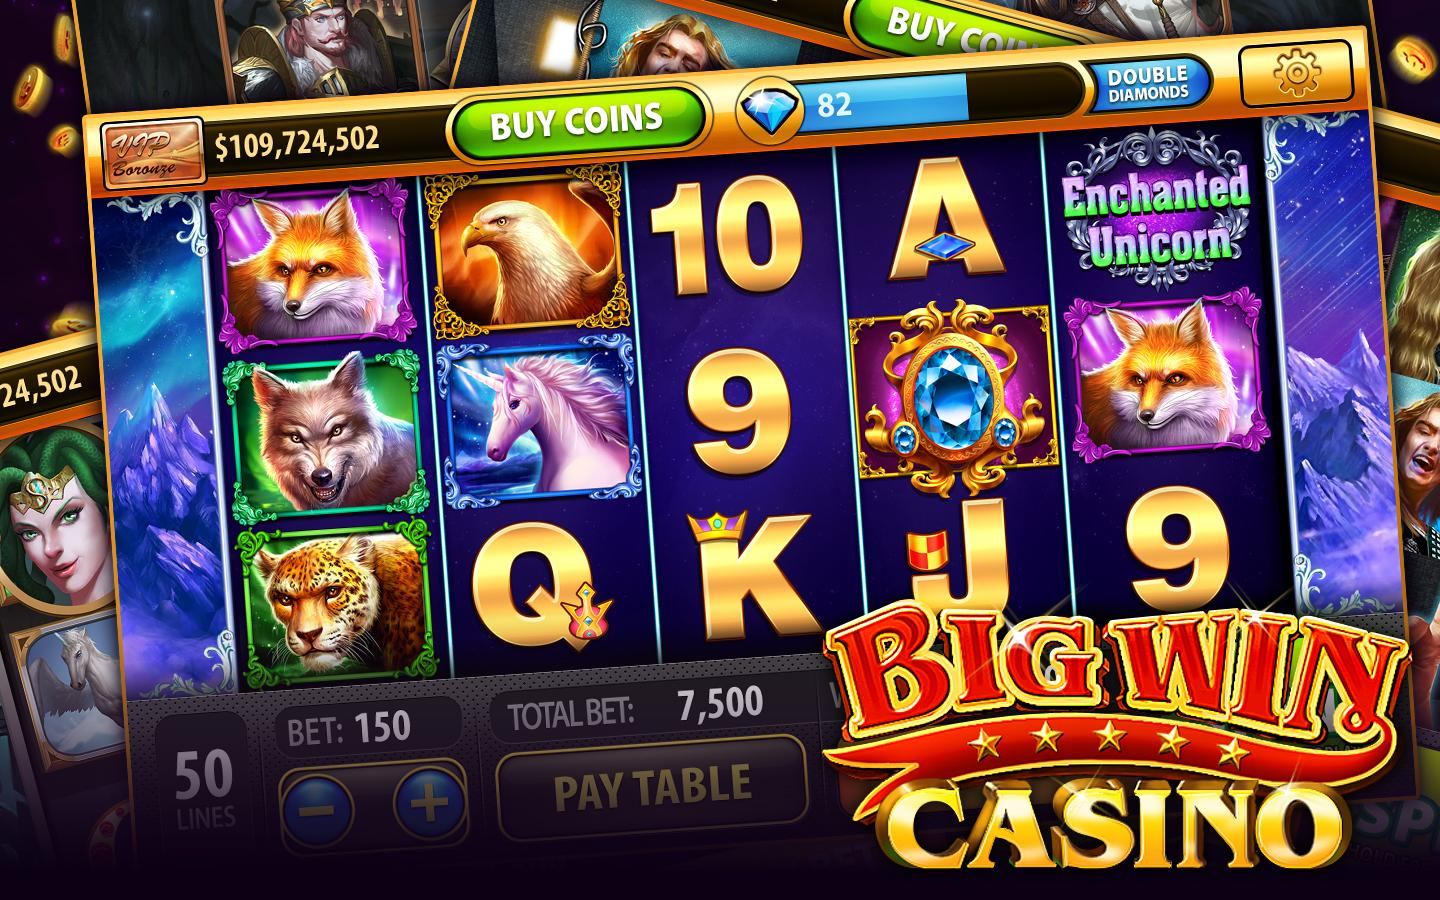 Bar Star Slot - Play for Free Online with No Downloads